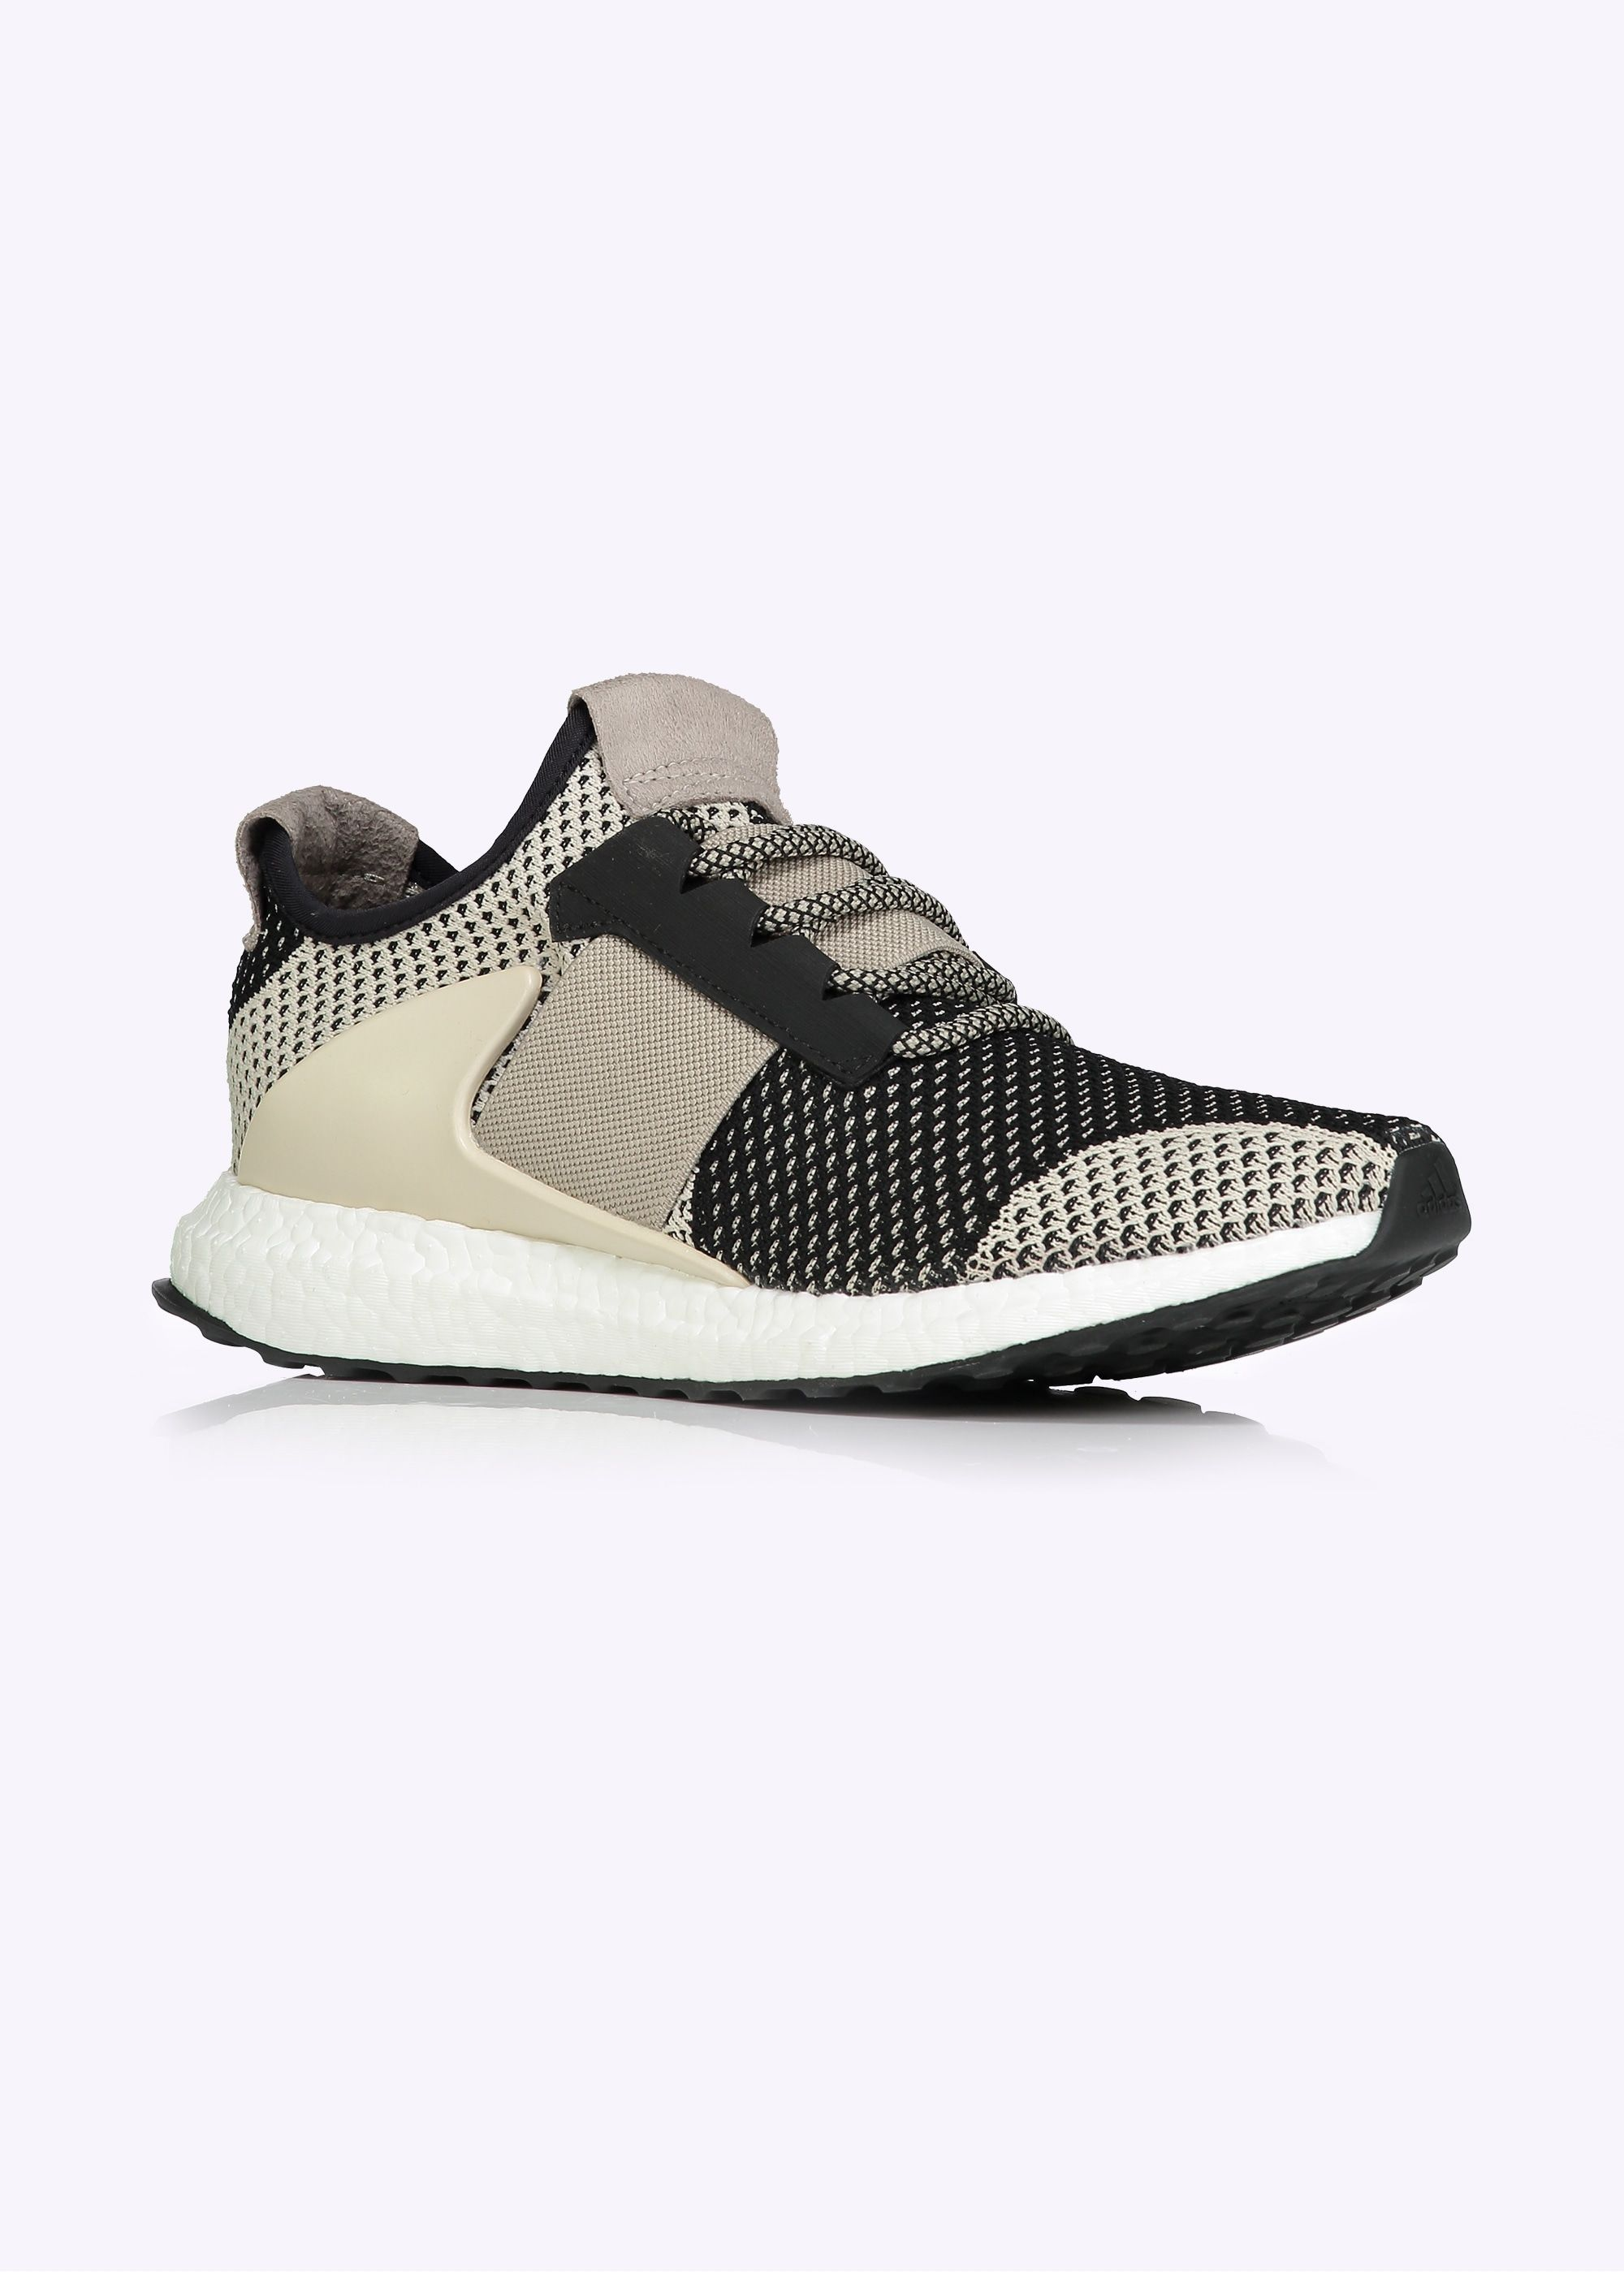 e1d1e0fdf Day One ADO Ultraboost - Clear Brown